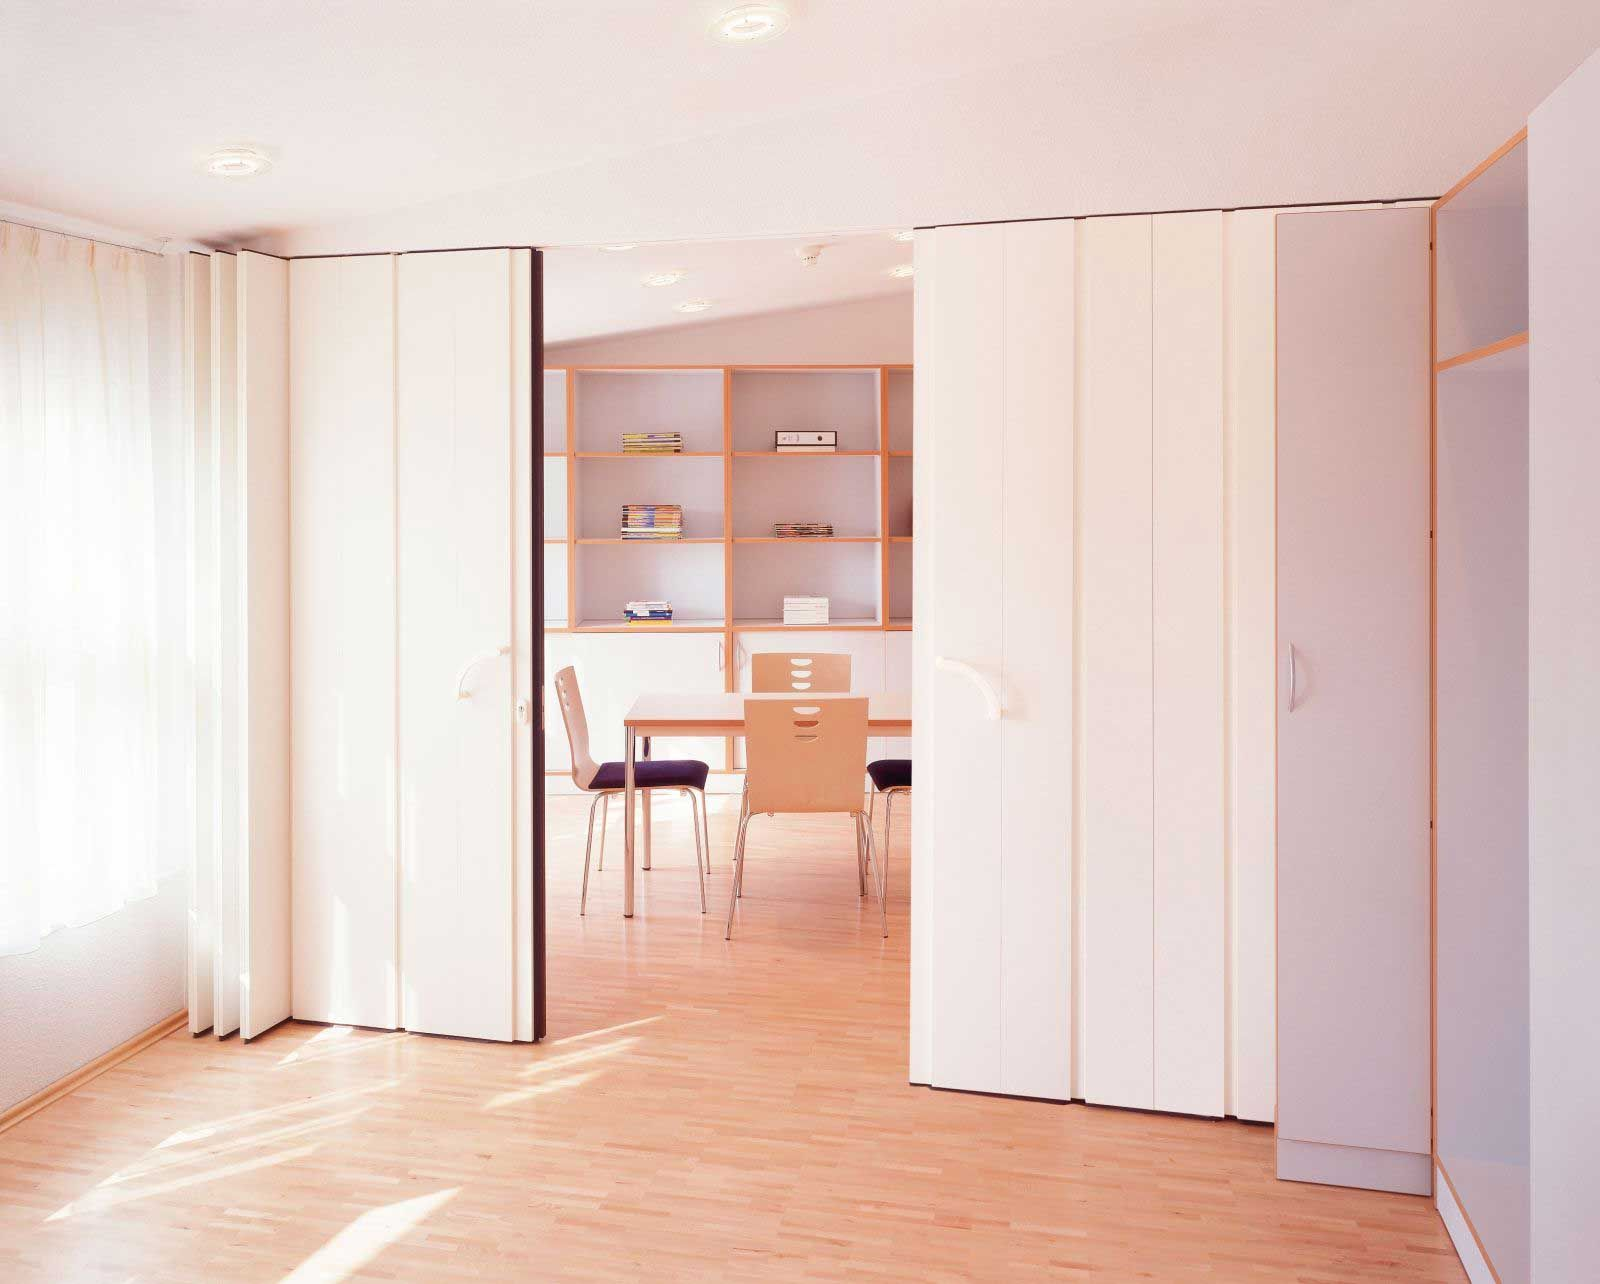 Dorma variplan movable wall partitions remodel for Movable walls room partitions